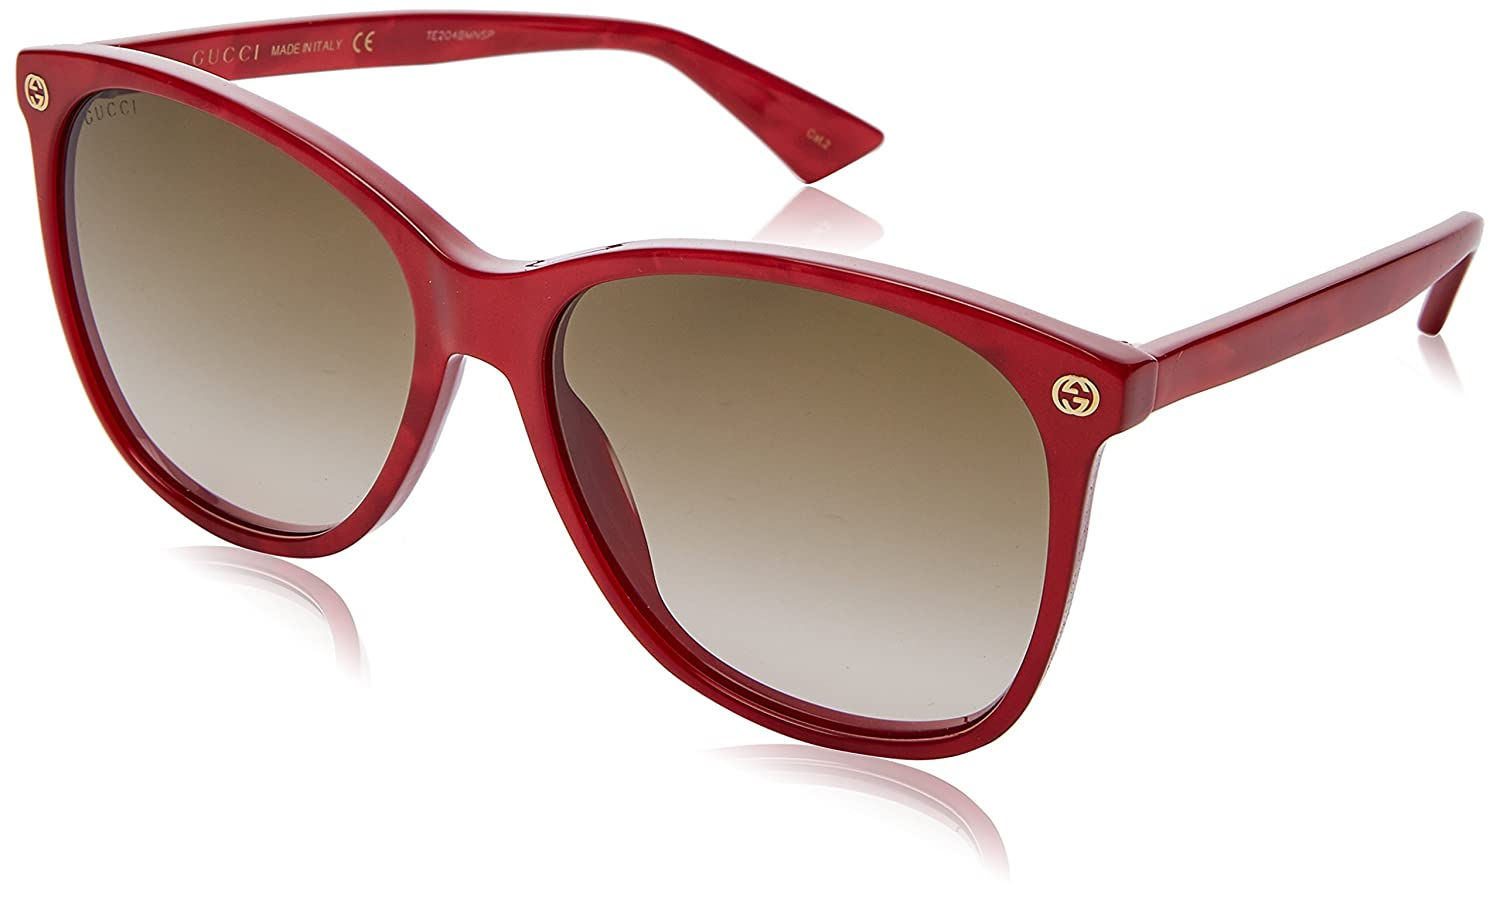 36a74b278d0 Amazon.com  Sunglasses Gucci GG 0024 S- 006 RED   BROWN  Clothing